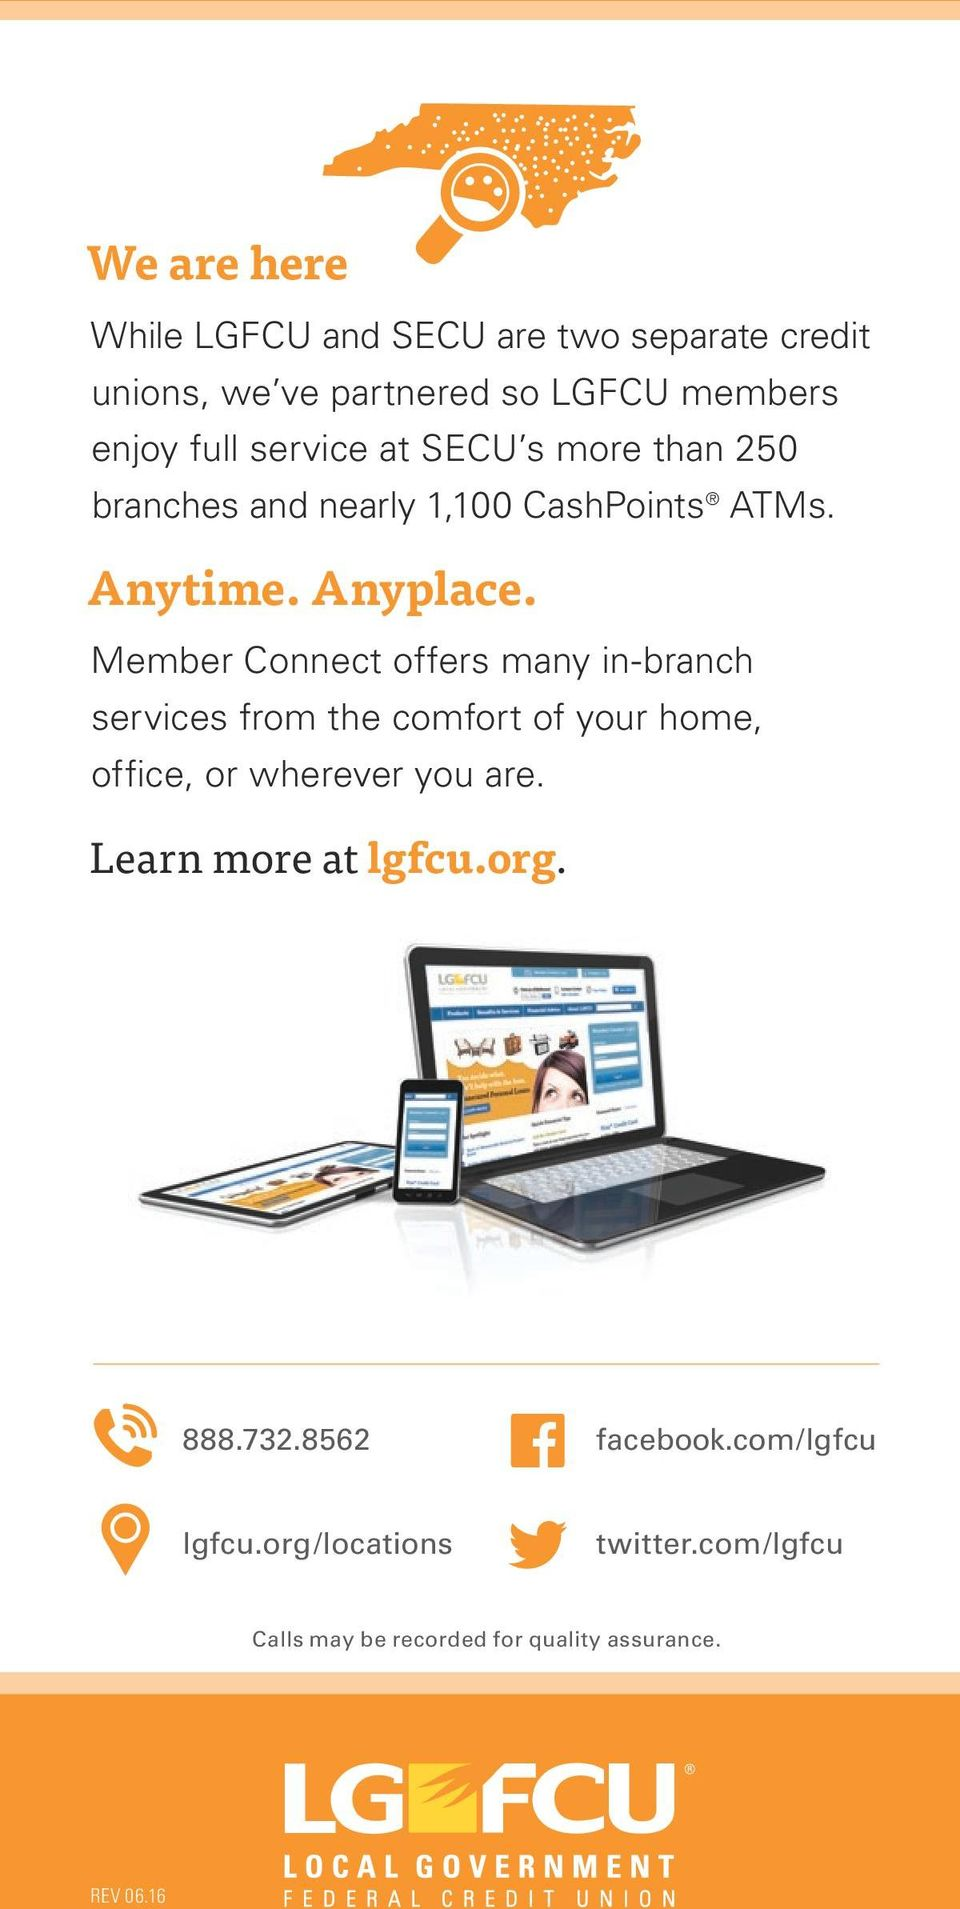 Member Connect offers many in-branch services from the comfort of your home, office, or wherever you are.